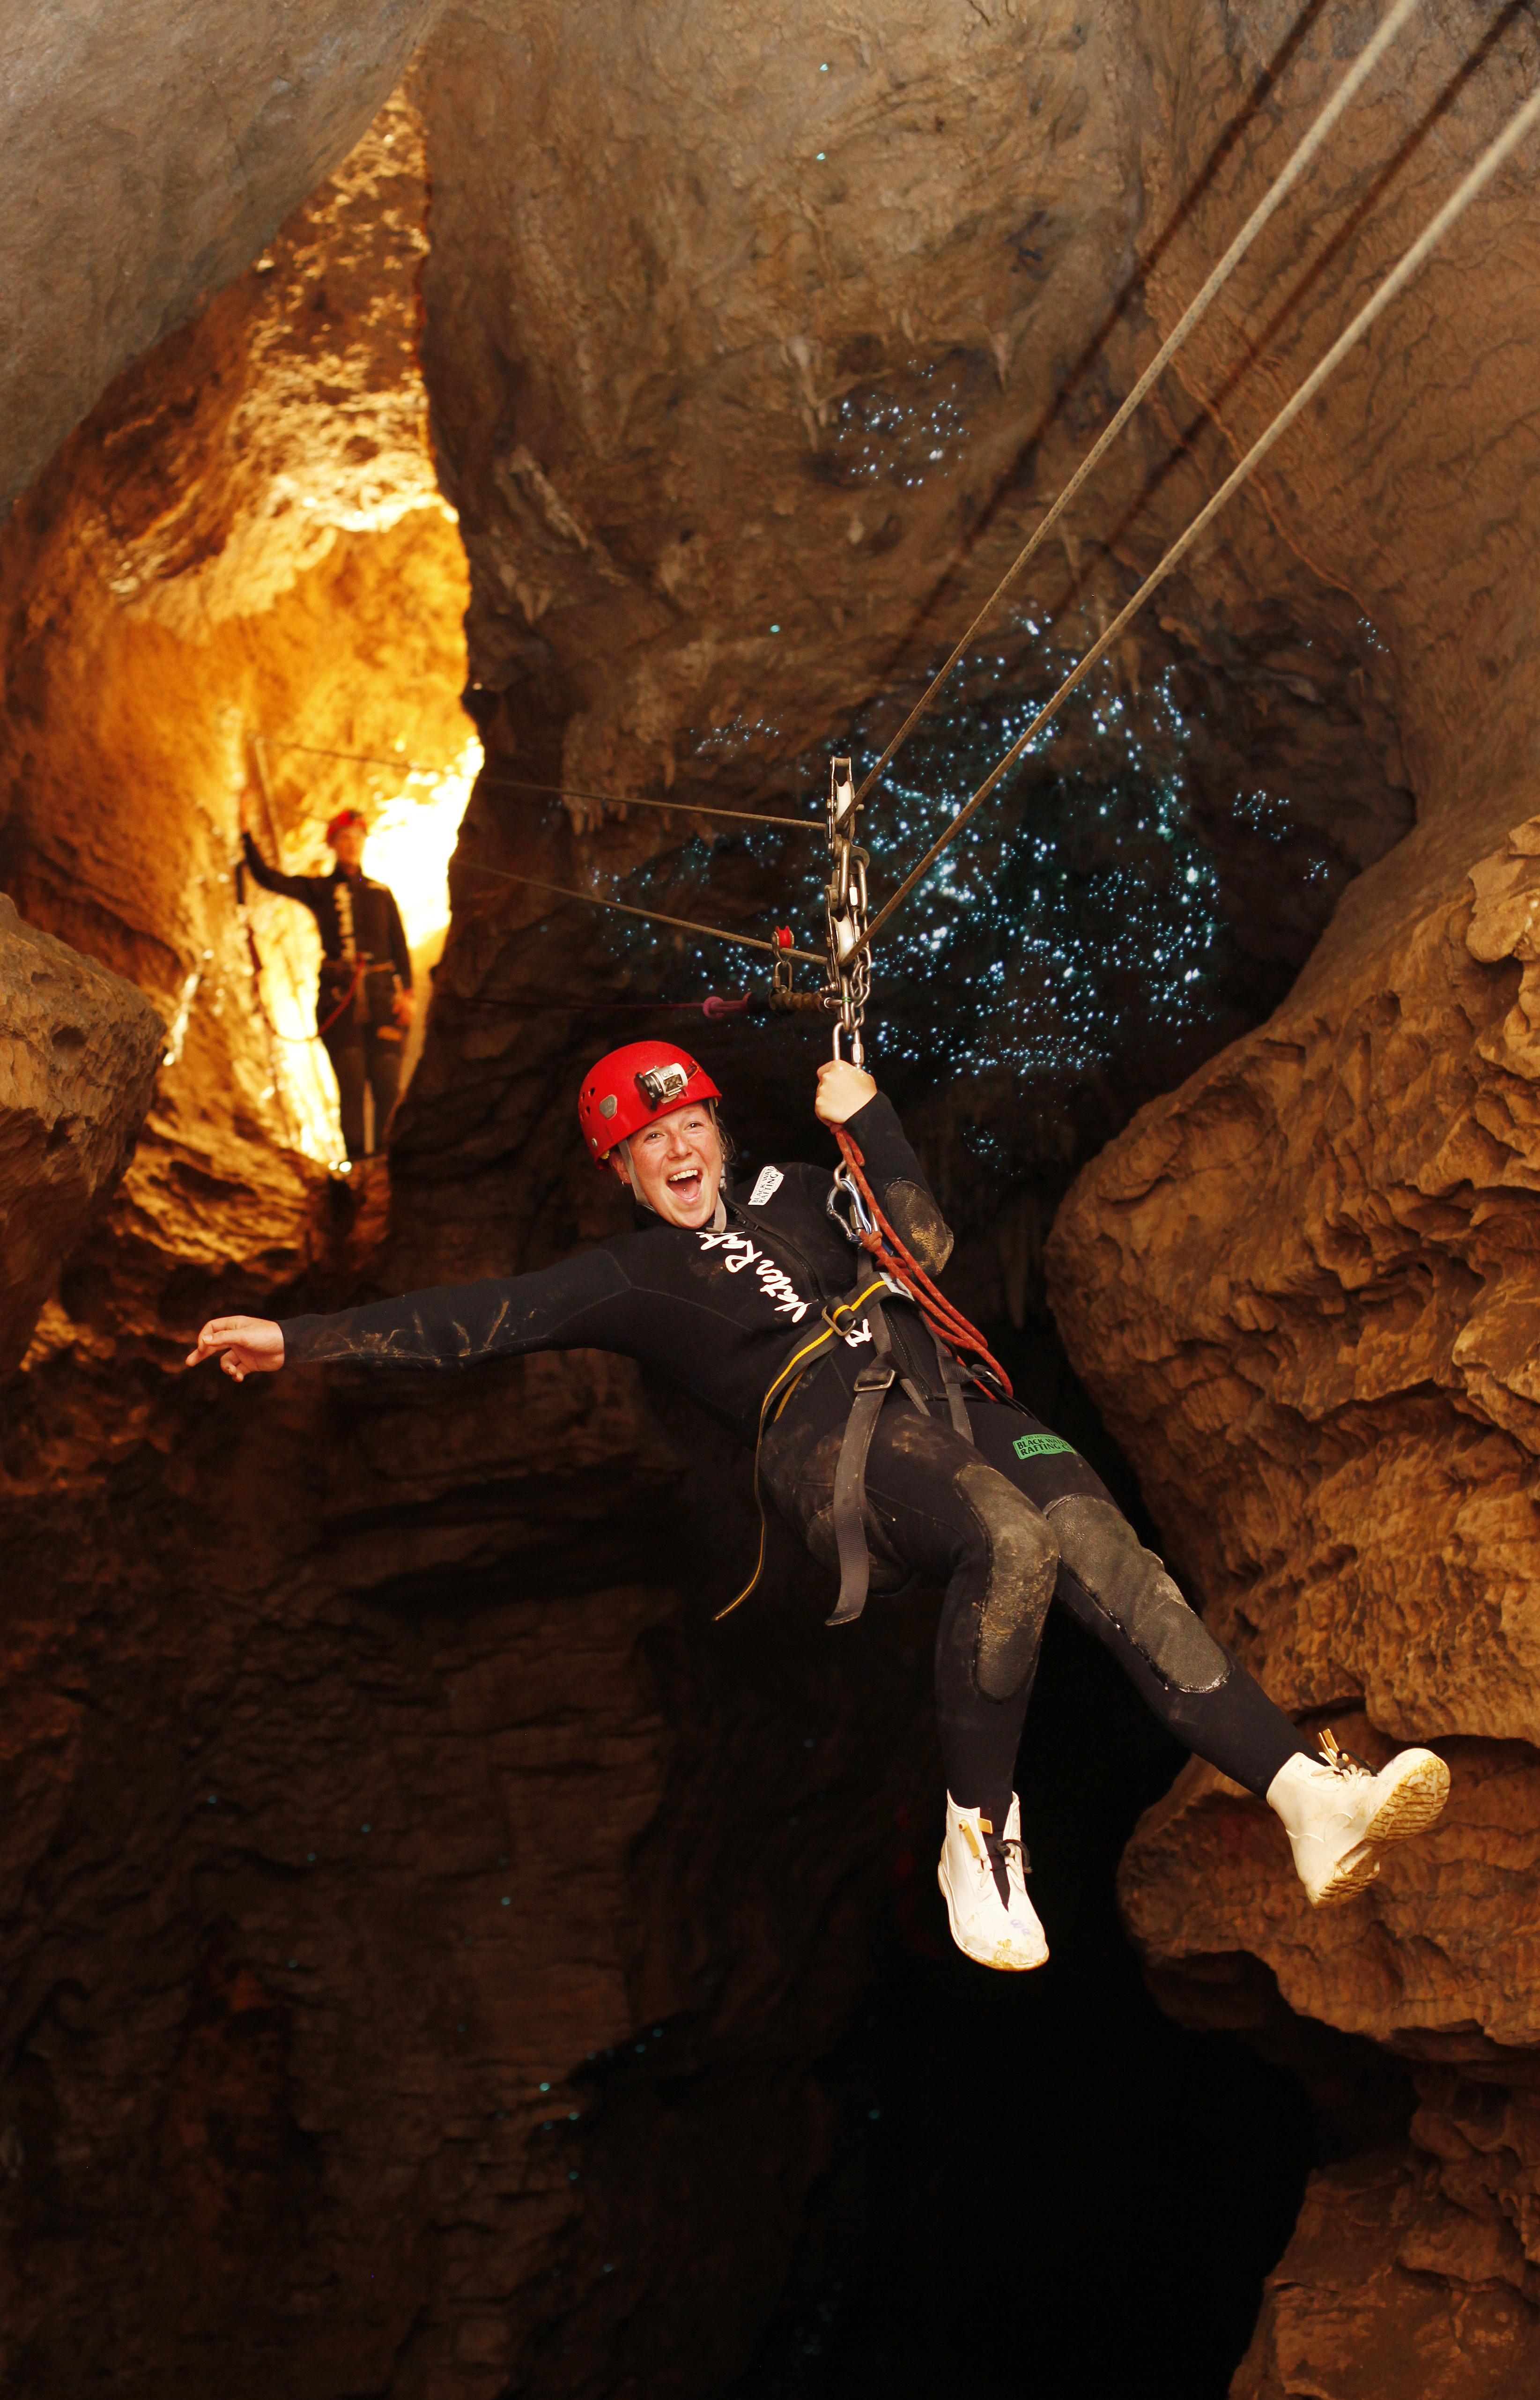 Abyss_Girl_Abseiling_Under glowworms